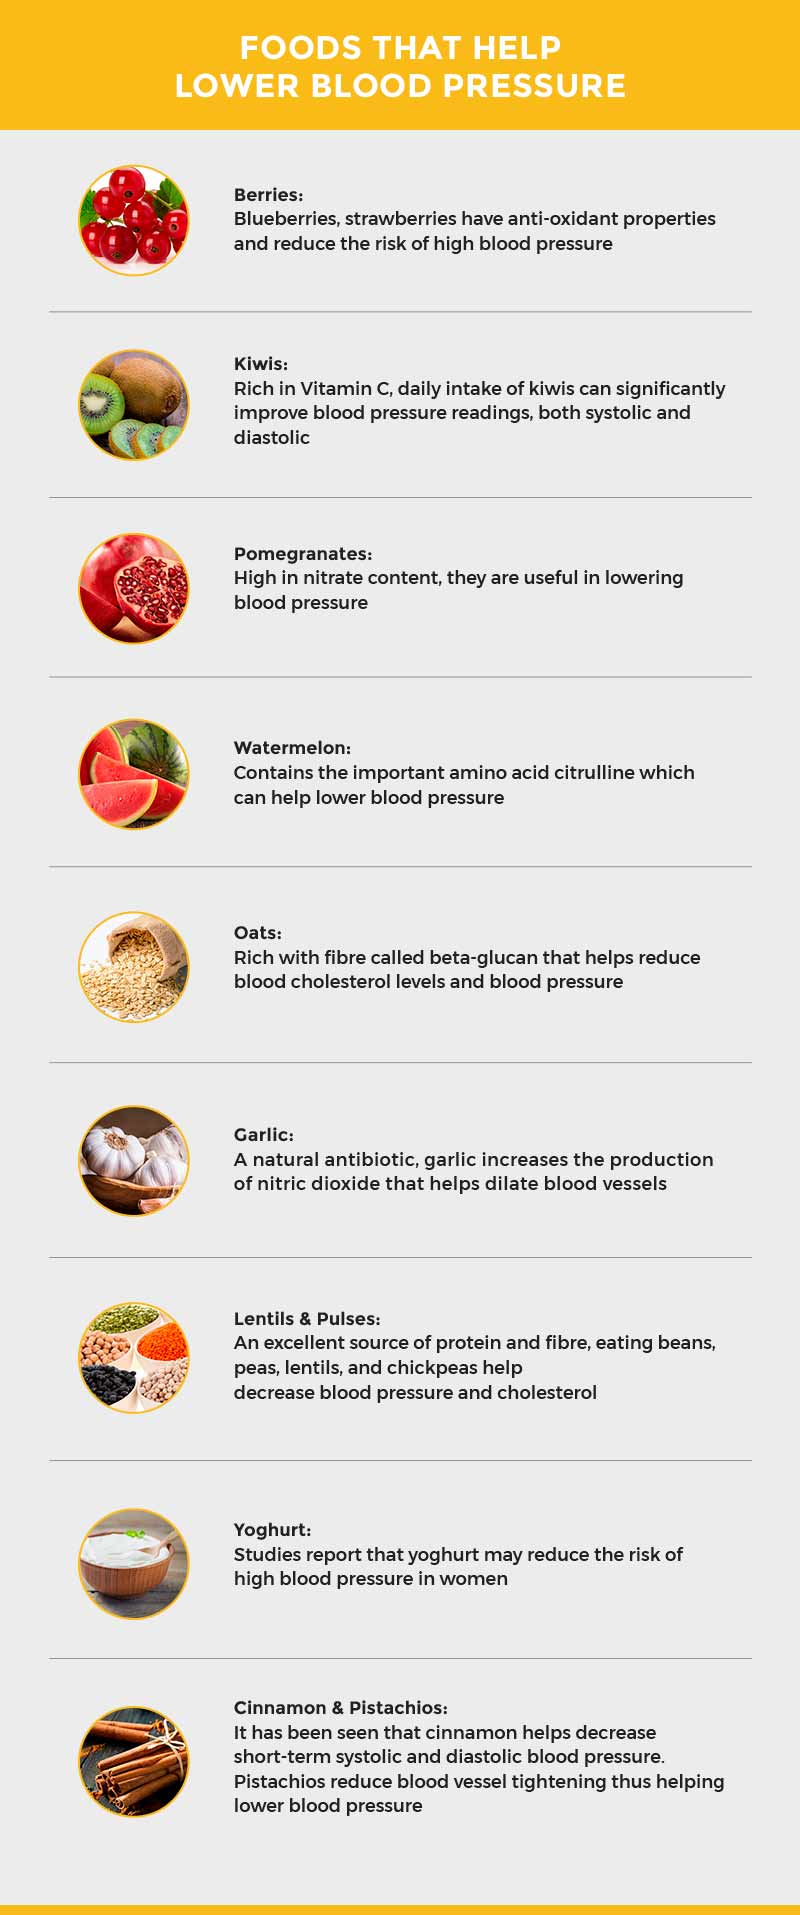 Foods that help lower blood pressure